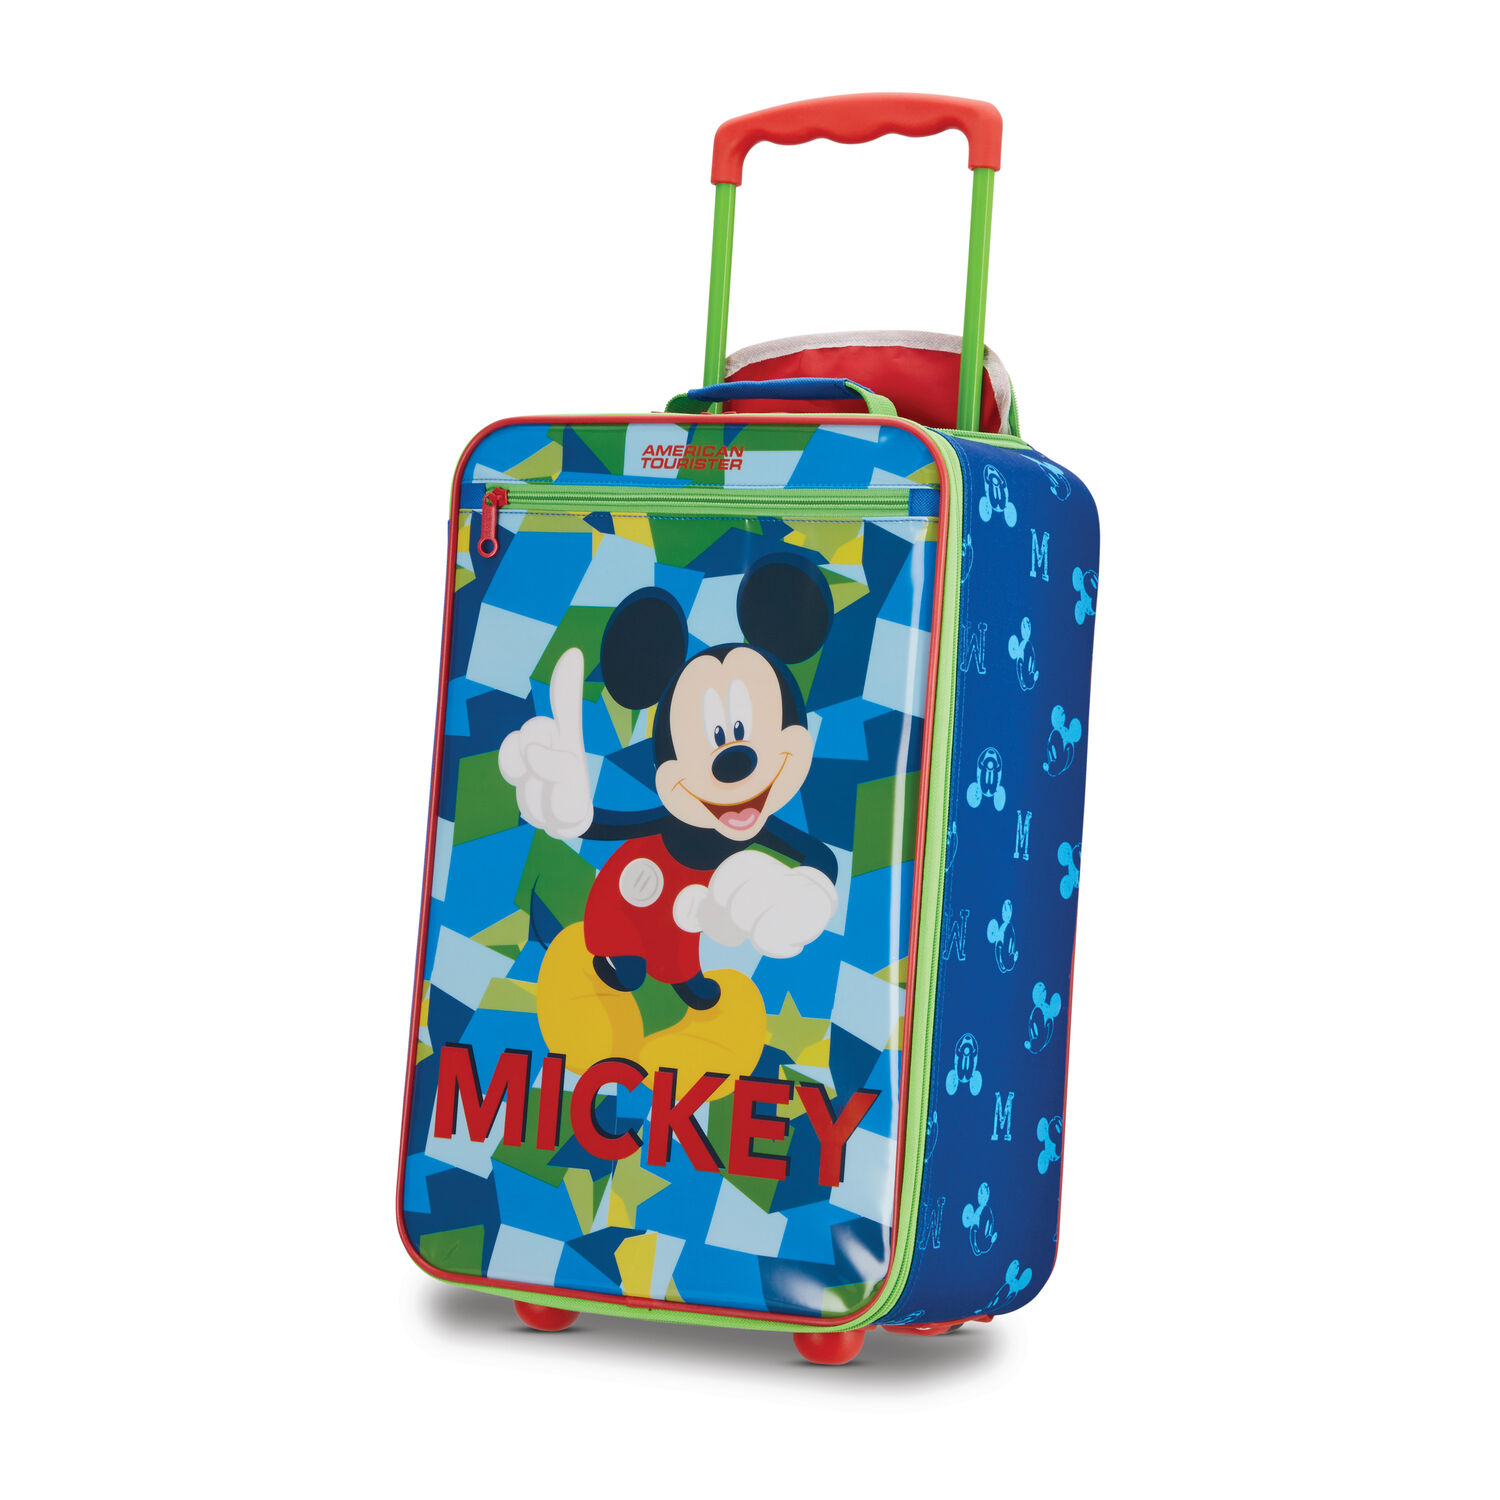 """7383a0933 American Tourister Disney Kids 18"""" Softside Upright in the color  Mickey."""